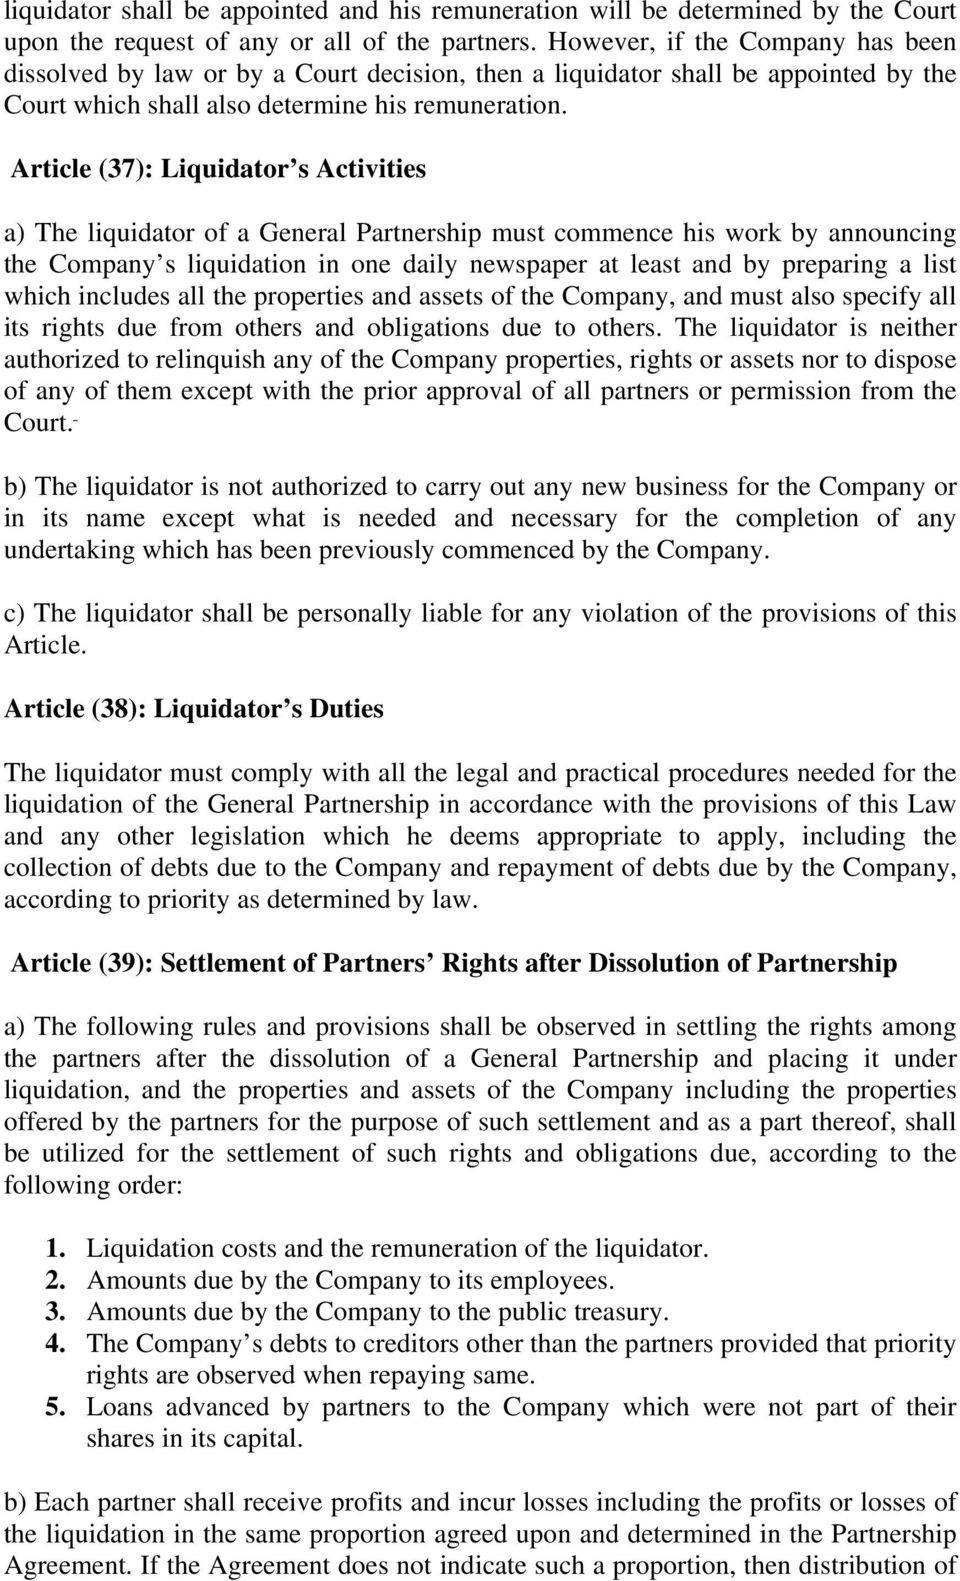 Article (37): Liquidator s Activities a) The liquidator of a General Partnership must commence his work by announcing the Company s liquidation in one daily newspaper at least and by preparing a list